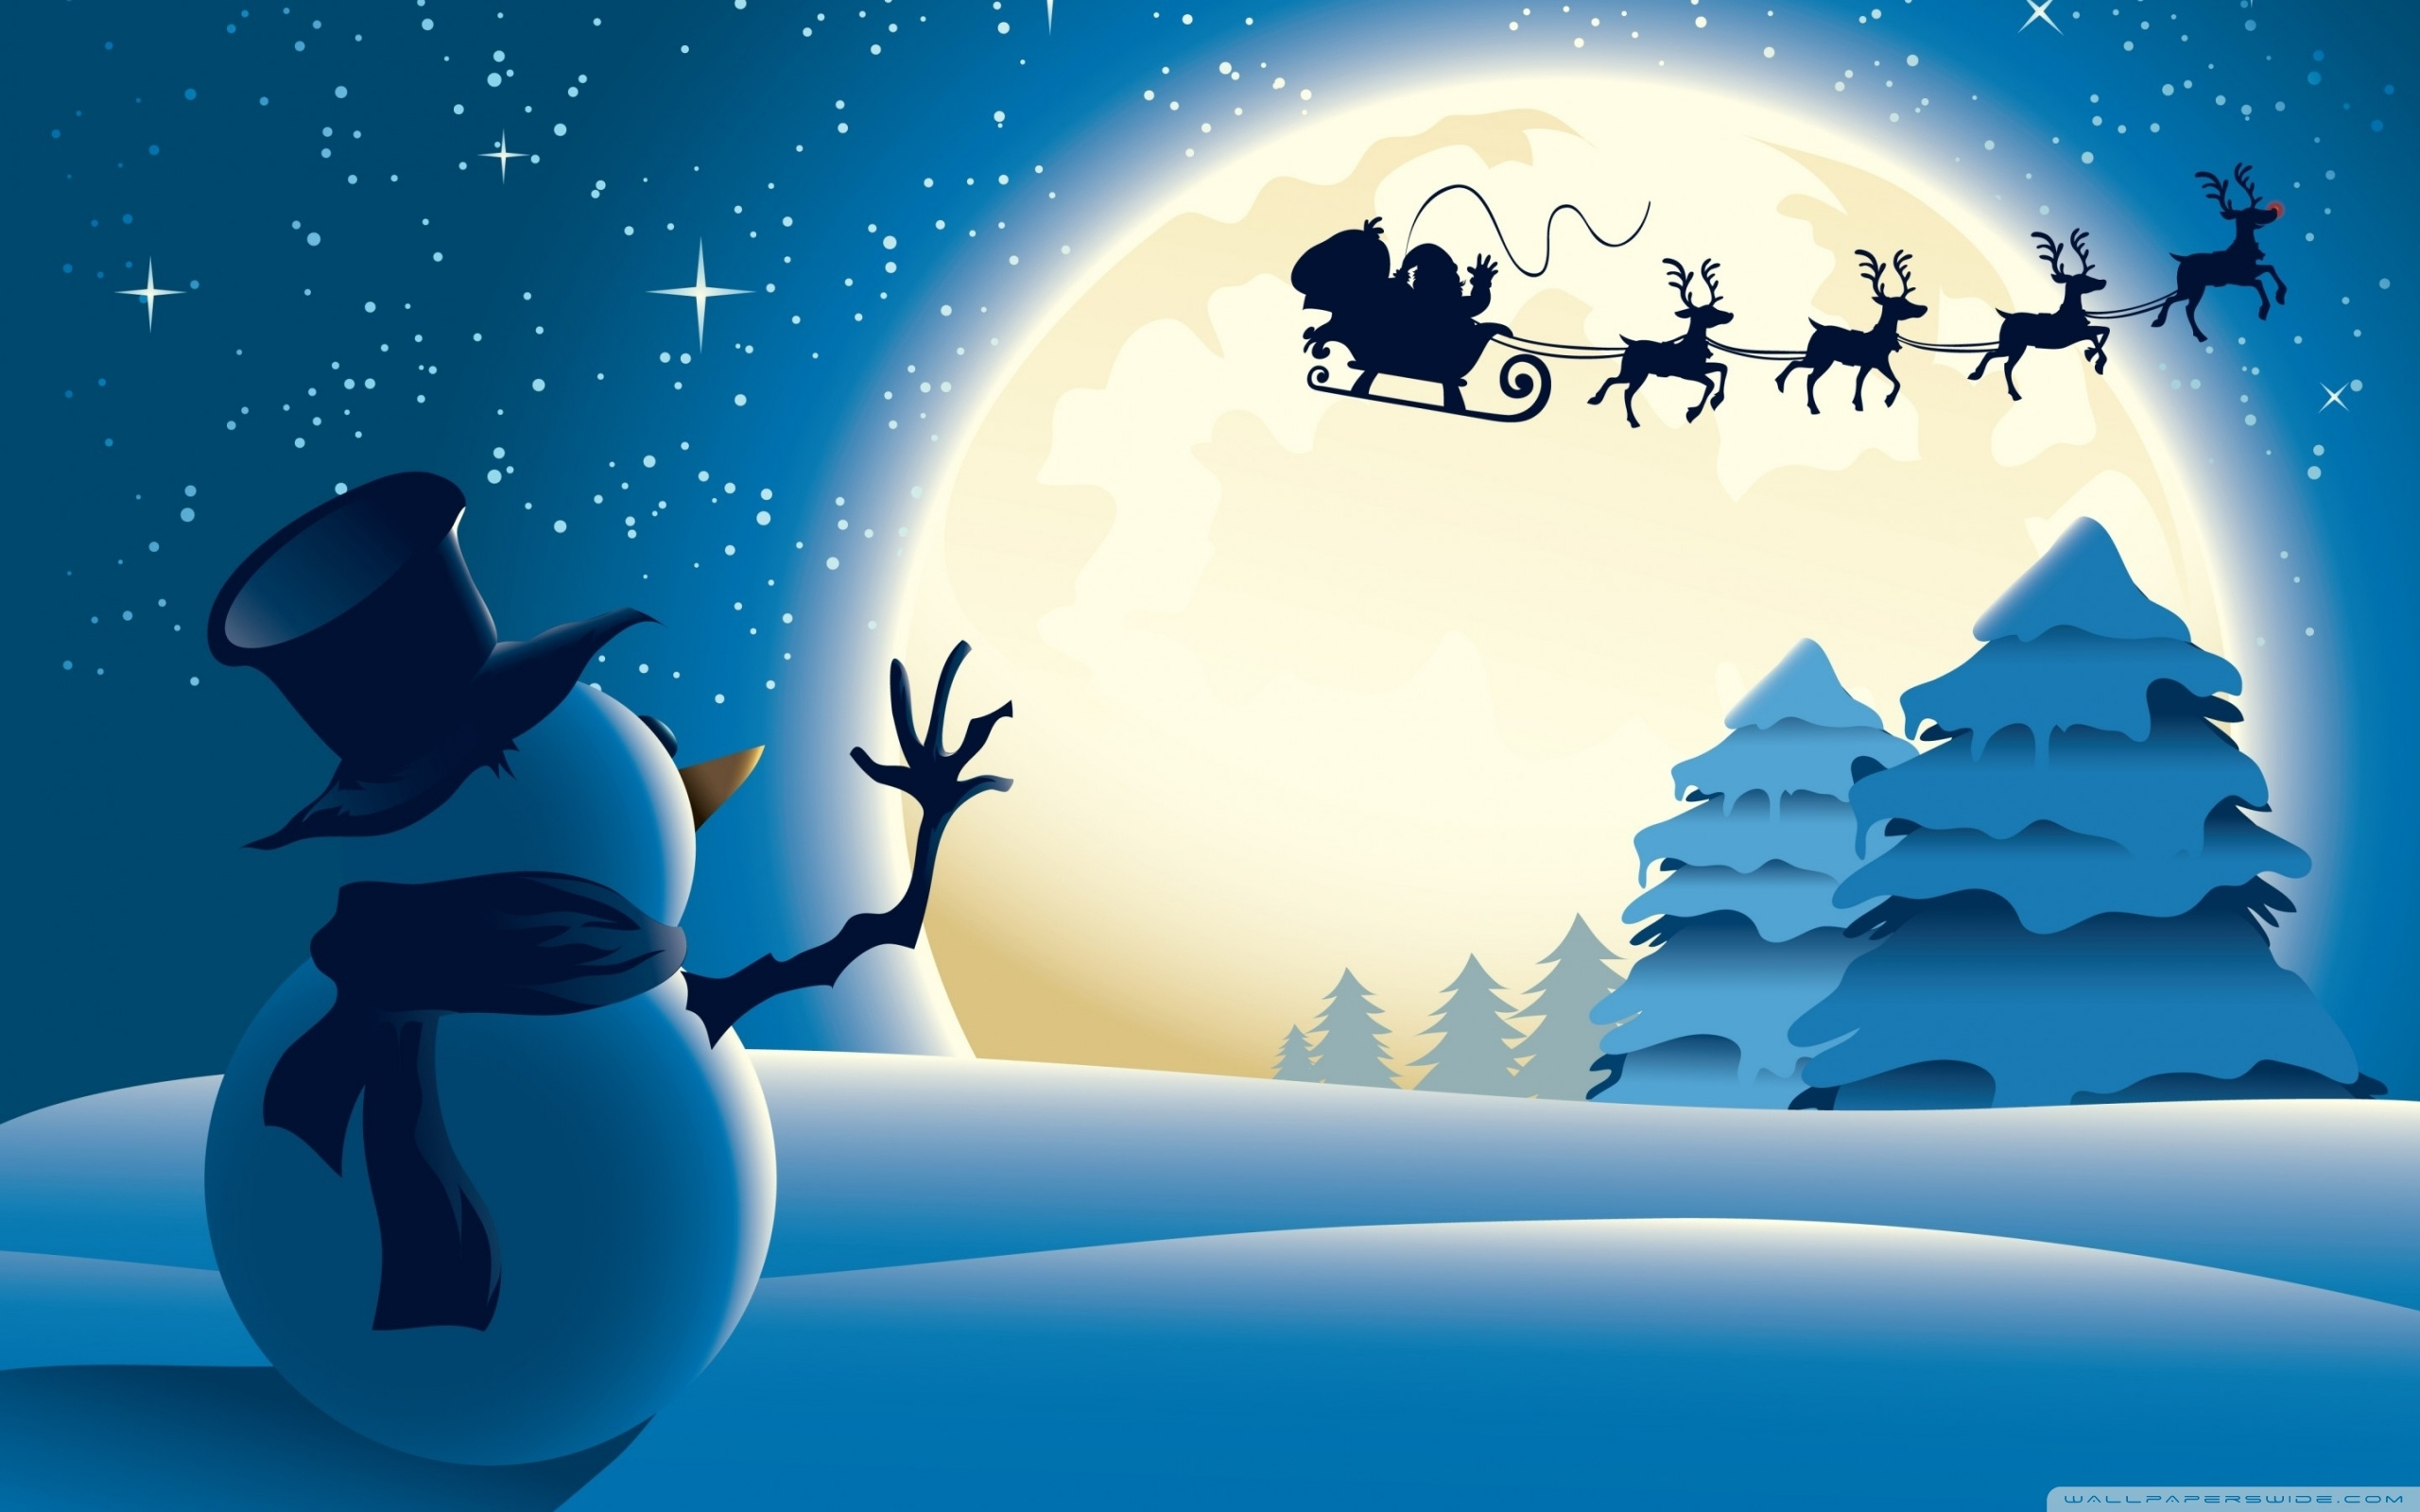 santa claus illustration free wallpaper 2560x1600